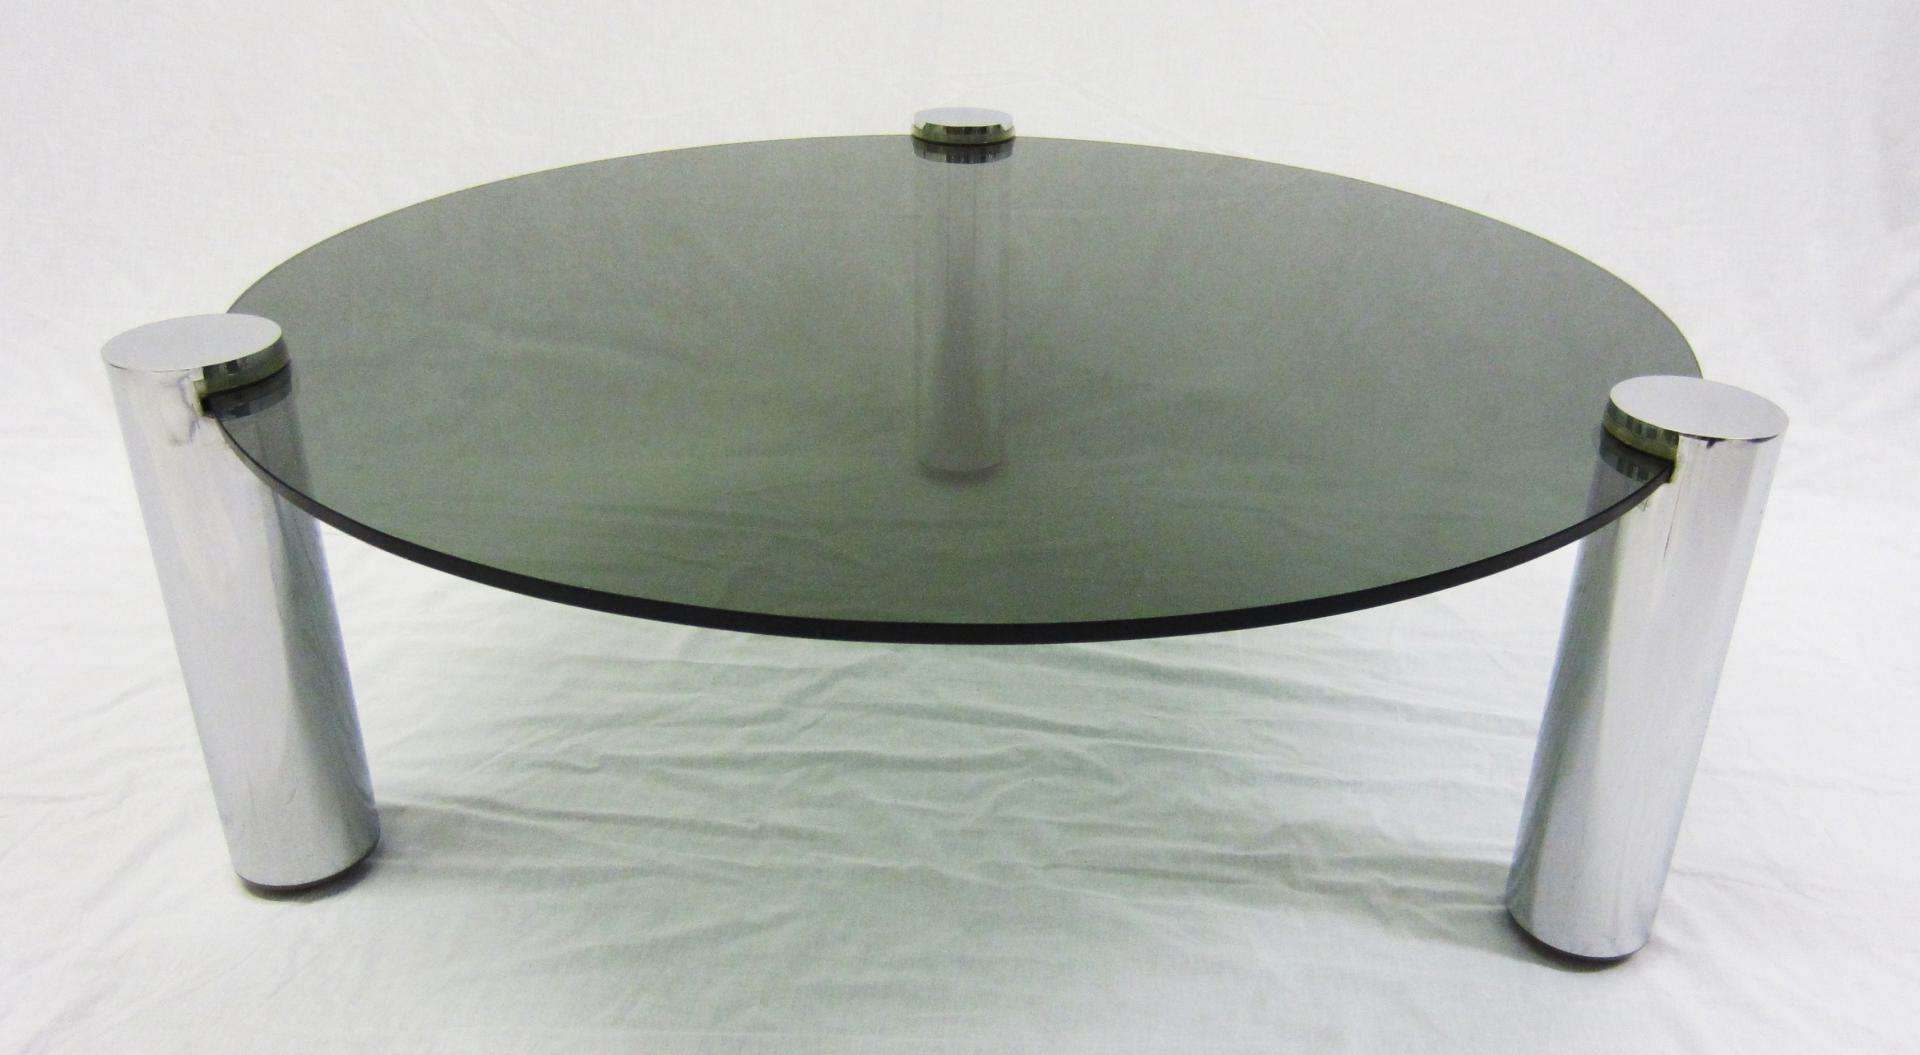 Widely Used Round Chrome Coffee Tables Intended For Round Glass And Chrome Coffee Table From Pieff, 1960s For Sale At (View 3 of 20)